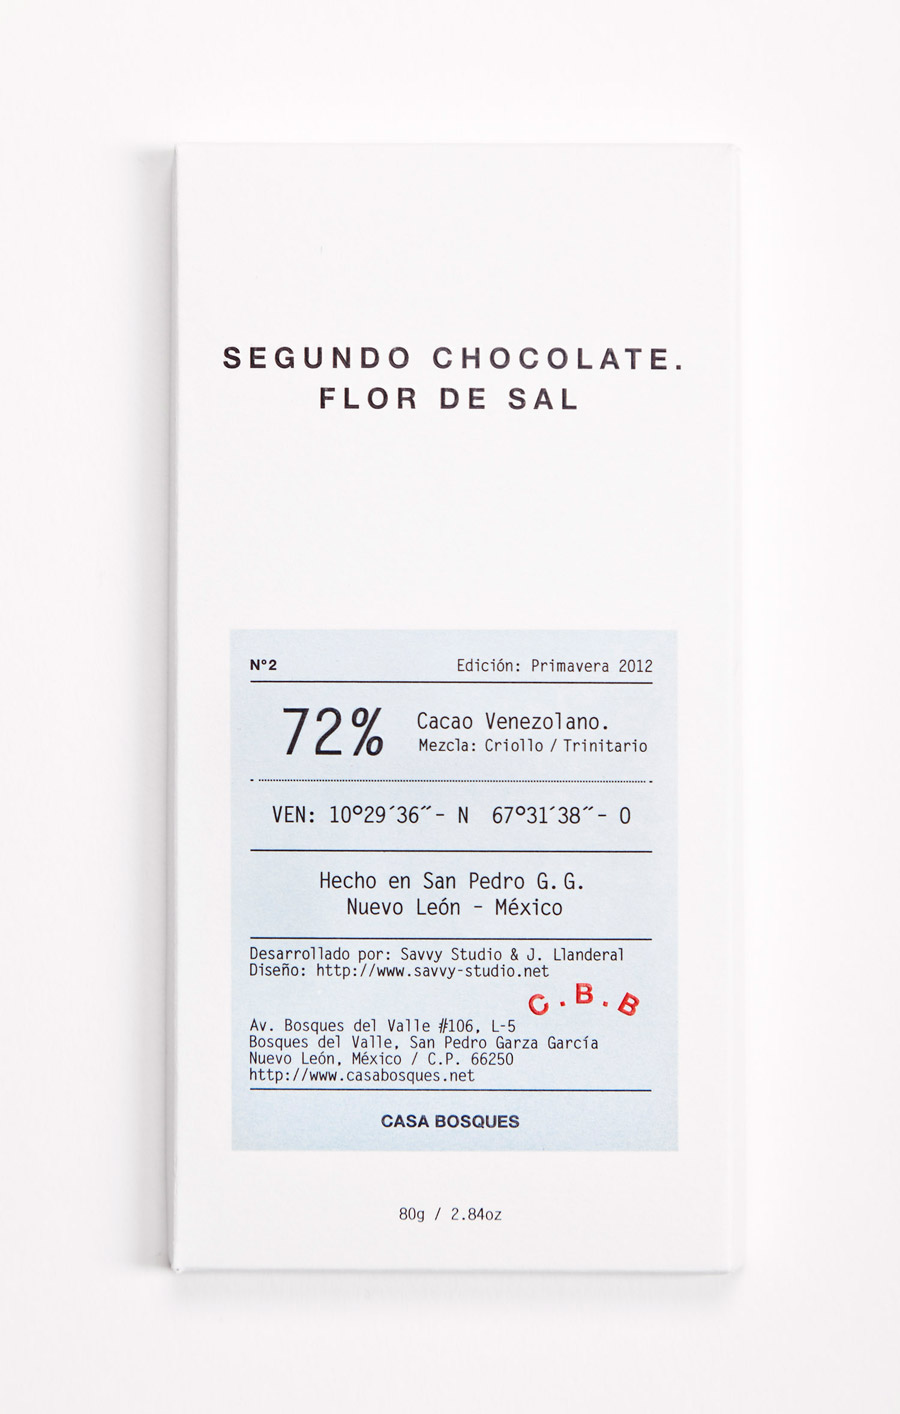 Savvy Studio: Casa Bosques Chocolates